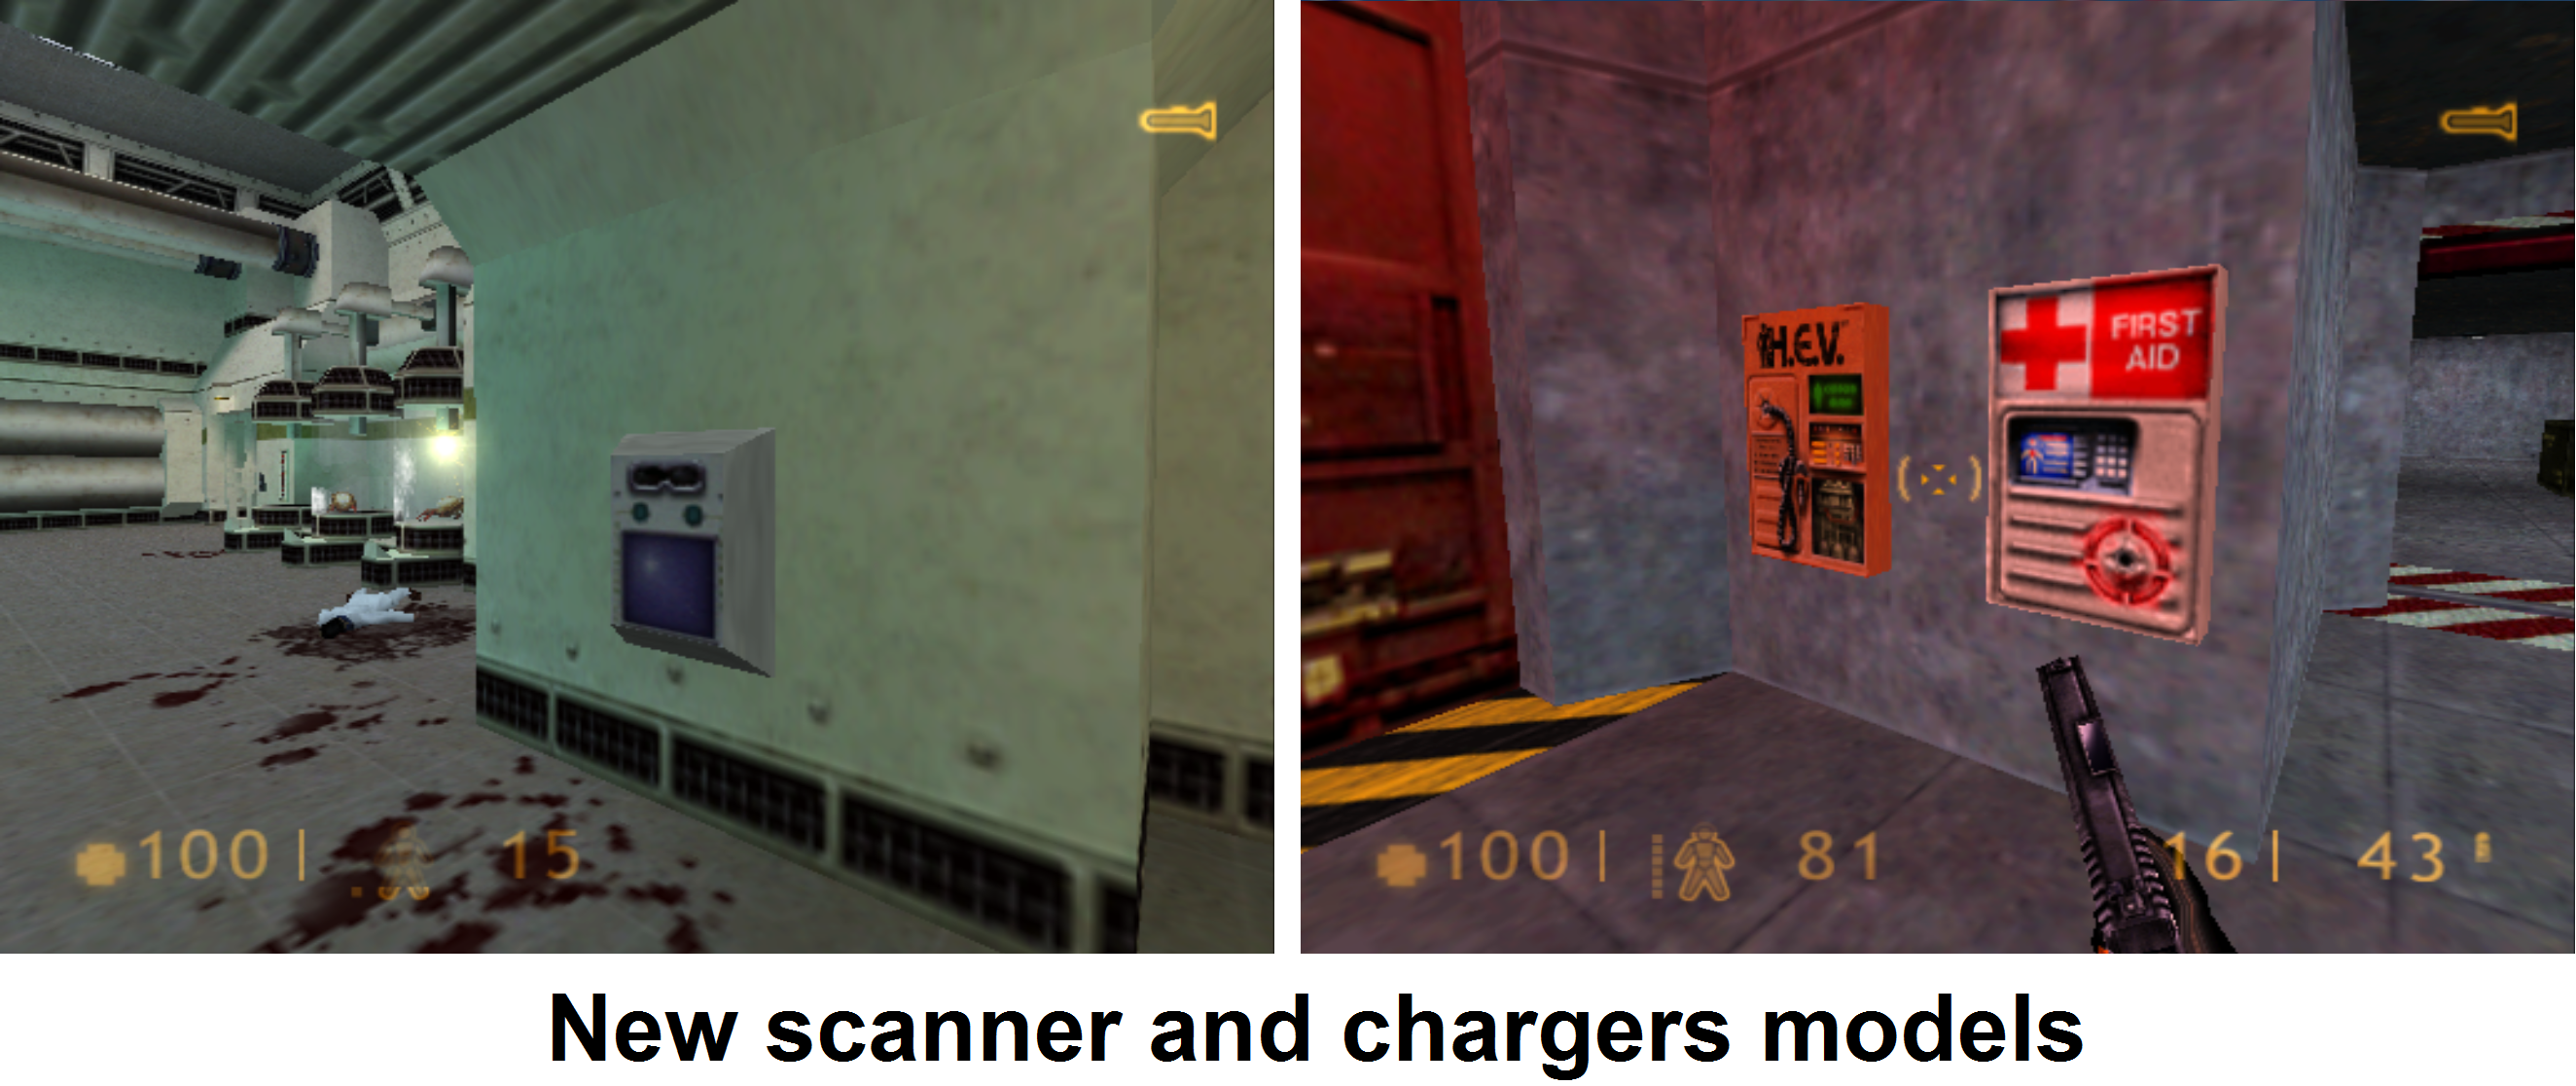 New models for scanner and chargers.